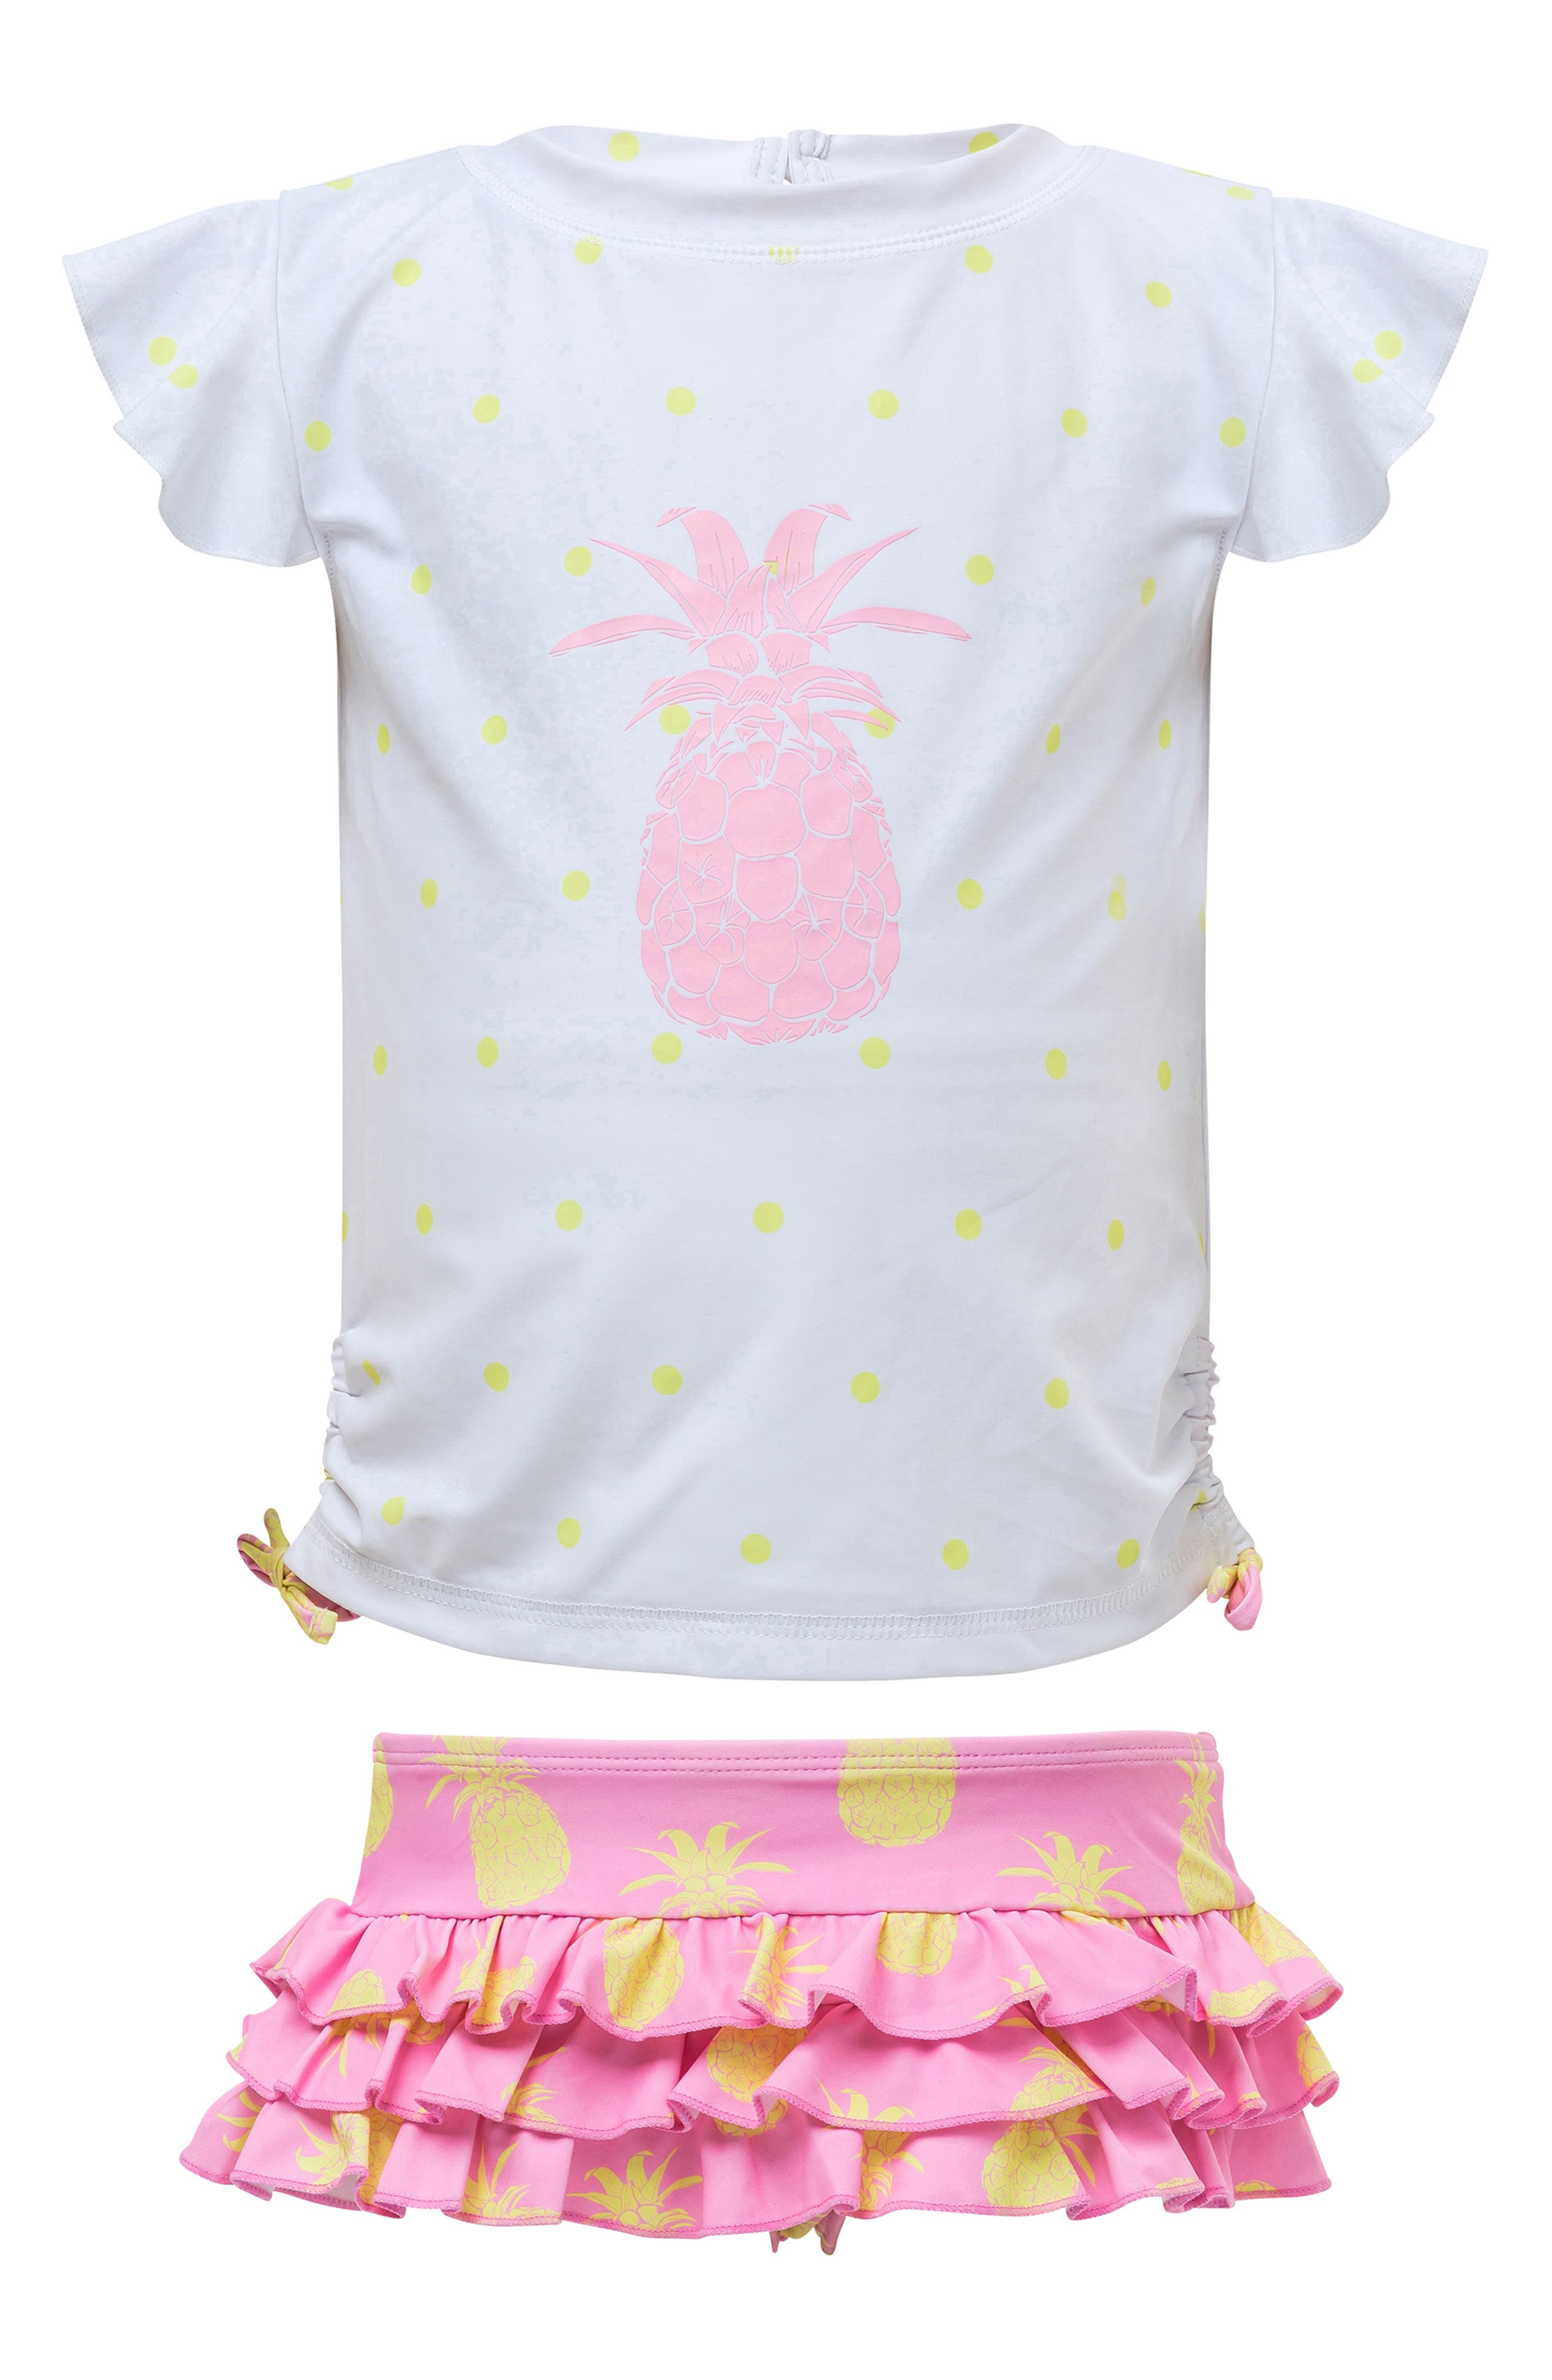 Pineapple Two-Piece Short Sleeve Ruffle Swimsuit,                             Main thumbnail 1, color,                             PINK YELLOW PINEAPPLE